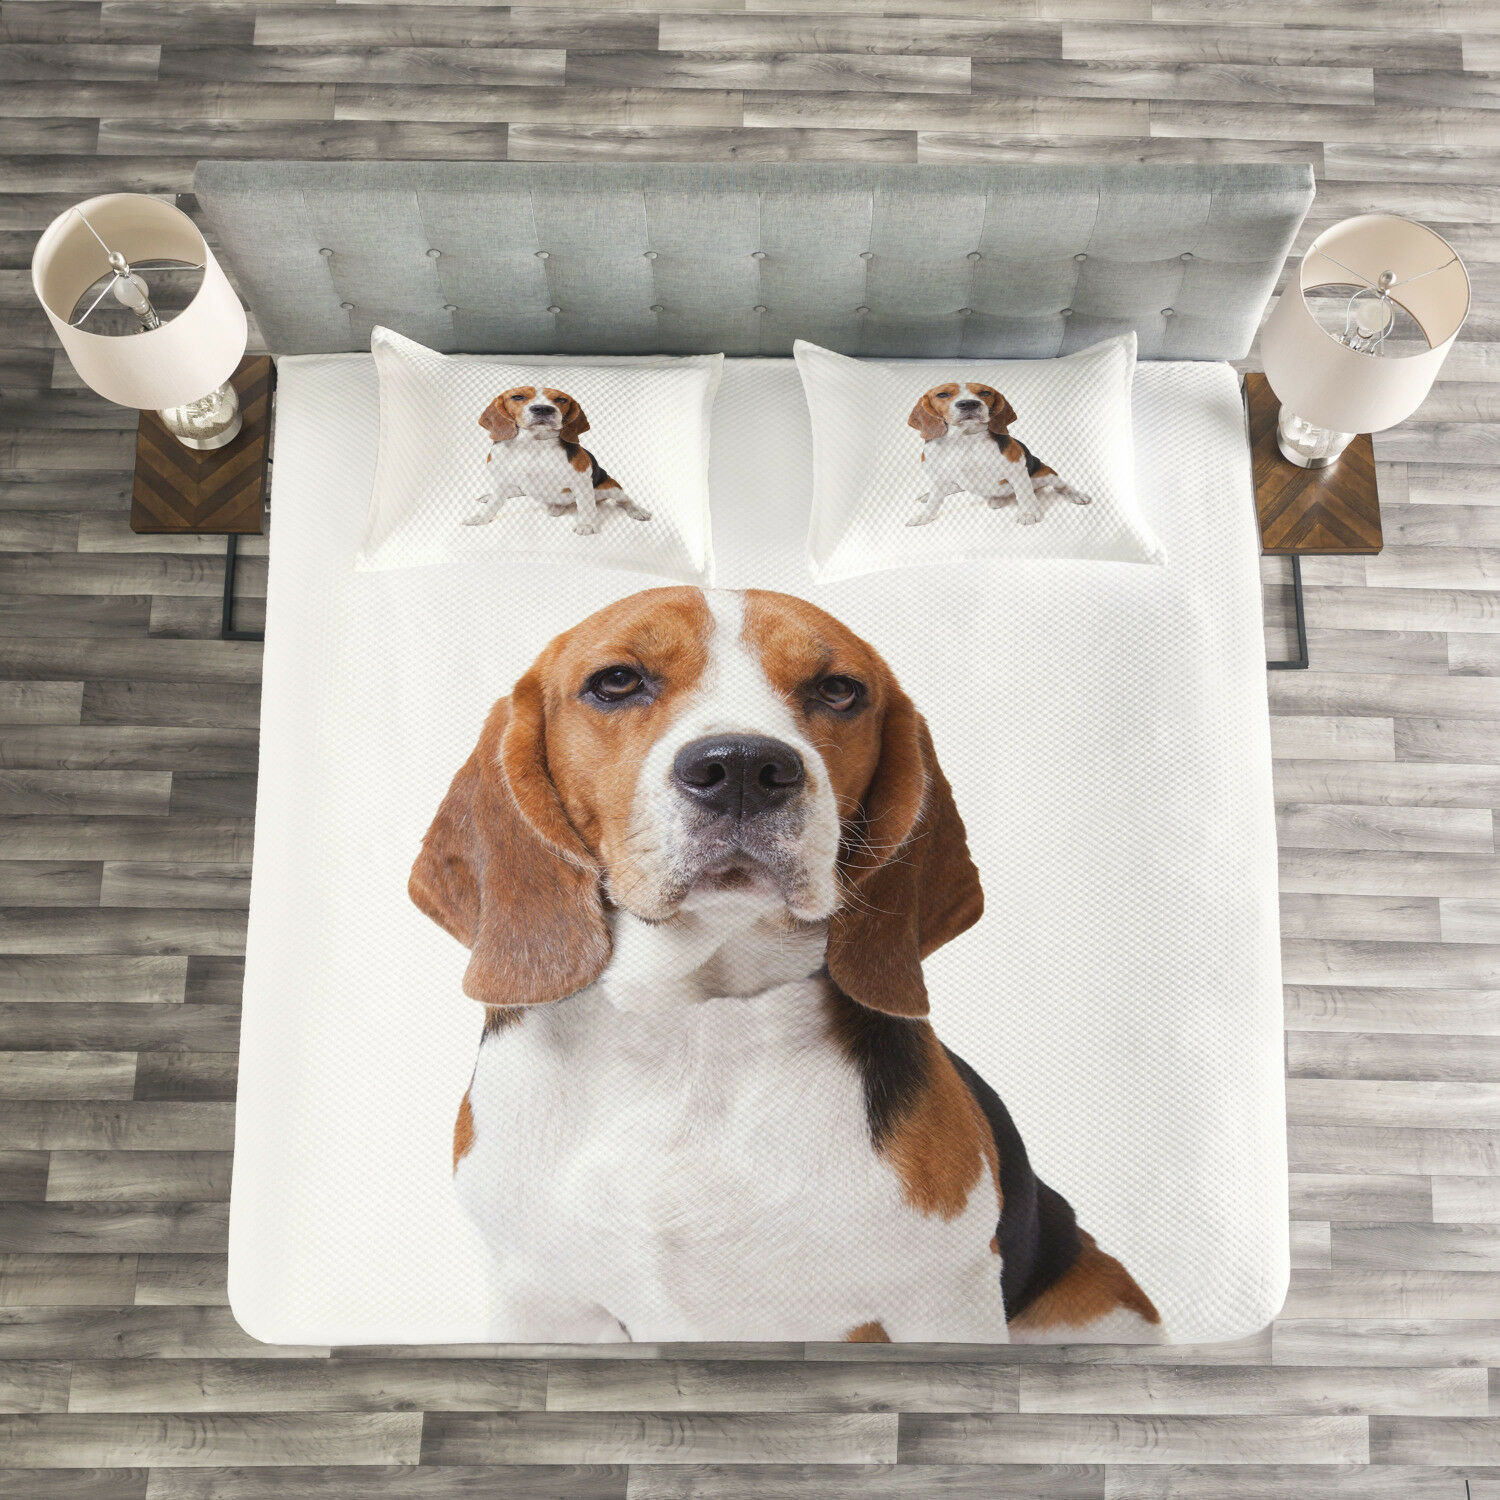 Beagle Quilted Bedspread & Pillow Shams Set, Puppy Dog Friend Posing Print